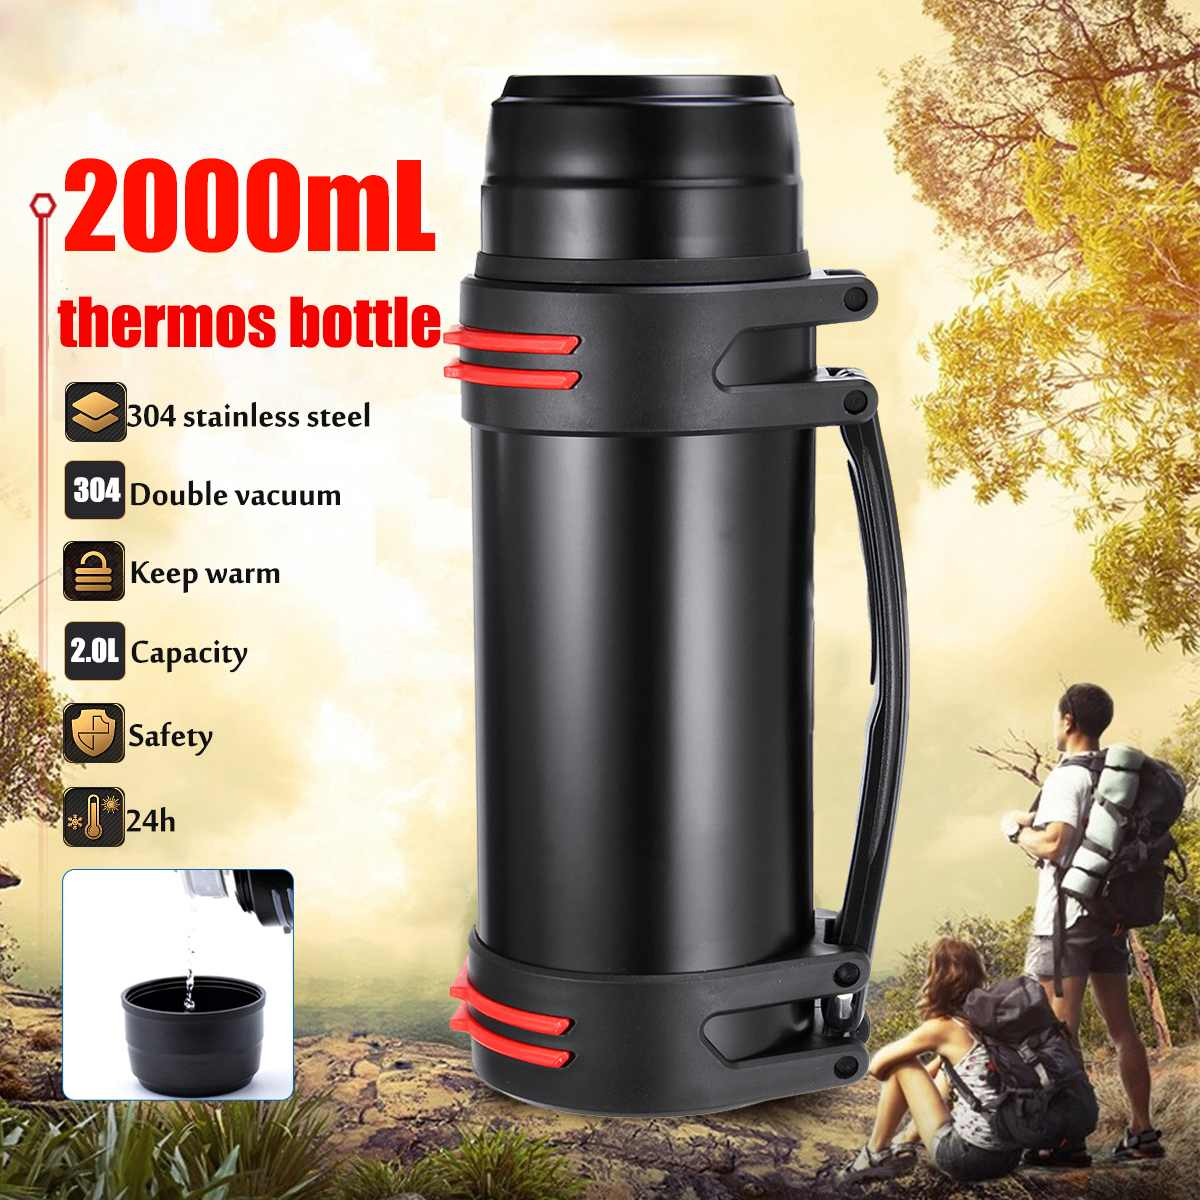 2L Stainless Steel thermoses Cup Bottle Portable Ourdoor Travel Mug Insulation Pot Electric Kettles Vacuum Flask Water Bottle2L Stainless Steel thermoses Cup Bottle Portable Ourdoor Travel Mug Insulation Pot Electric Kettles Vacuum Flask Water Bottle